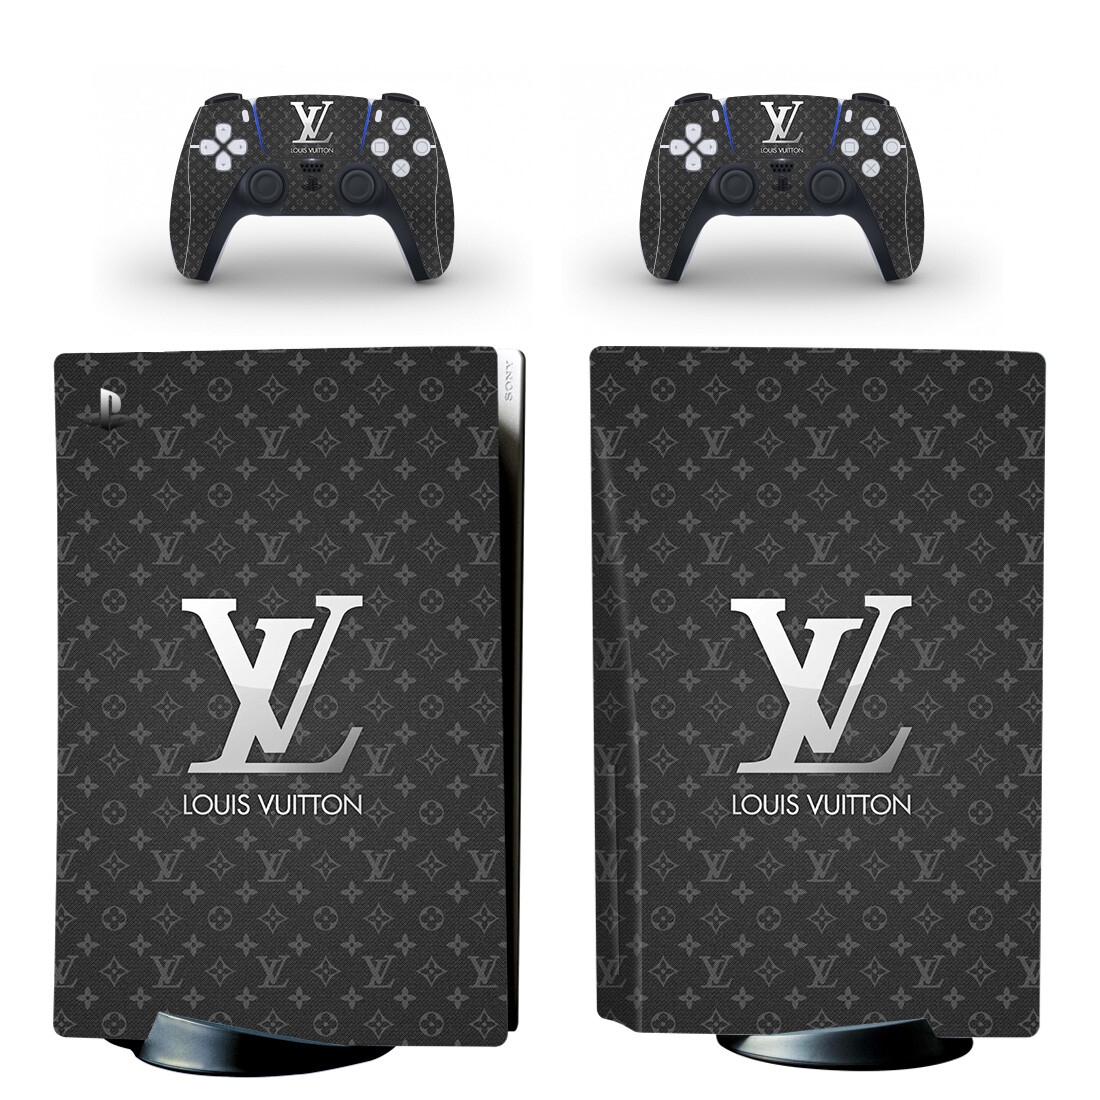 Louis Vuitton Skin Sticker For PlayStation 5 And Controllers